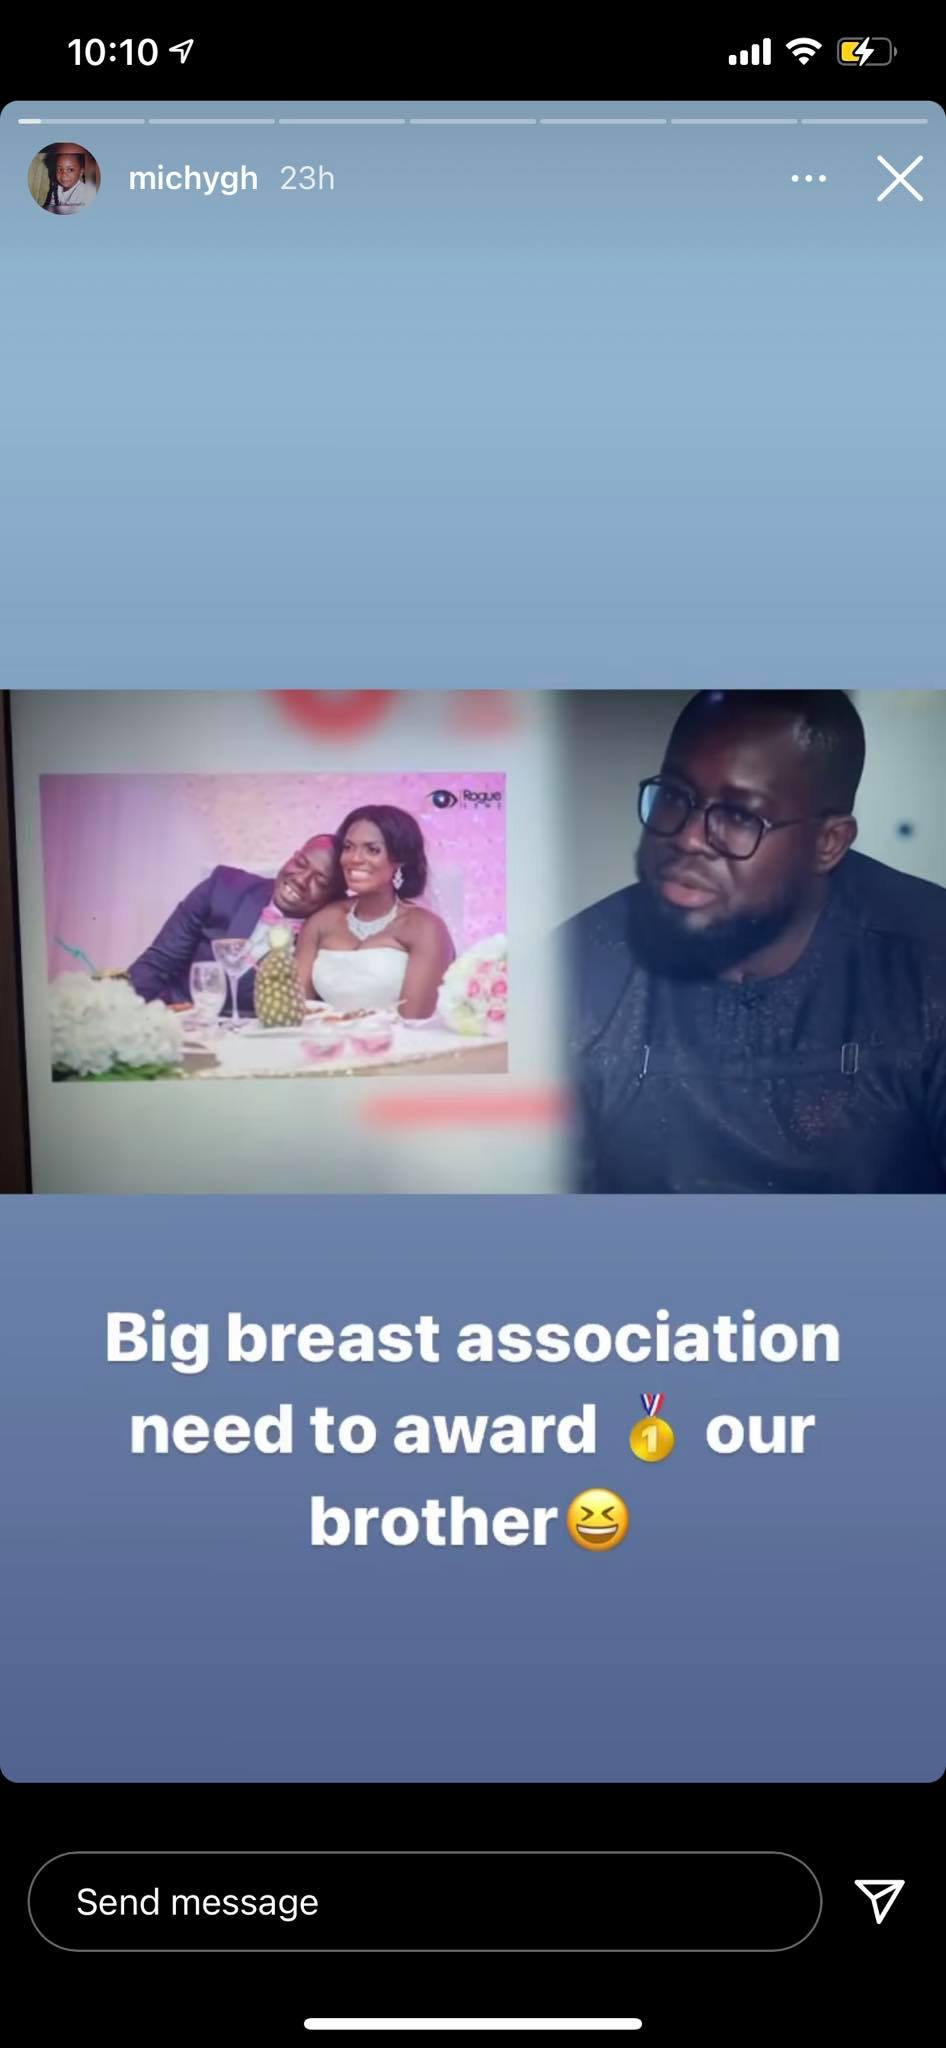 151966123 435129727704371 7593117274102392952 n - Shatta Michy reacts to Giovanni Caleb's statements that he loves big breast